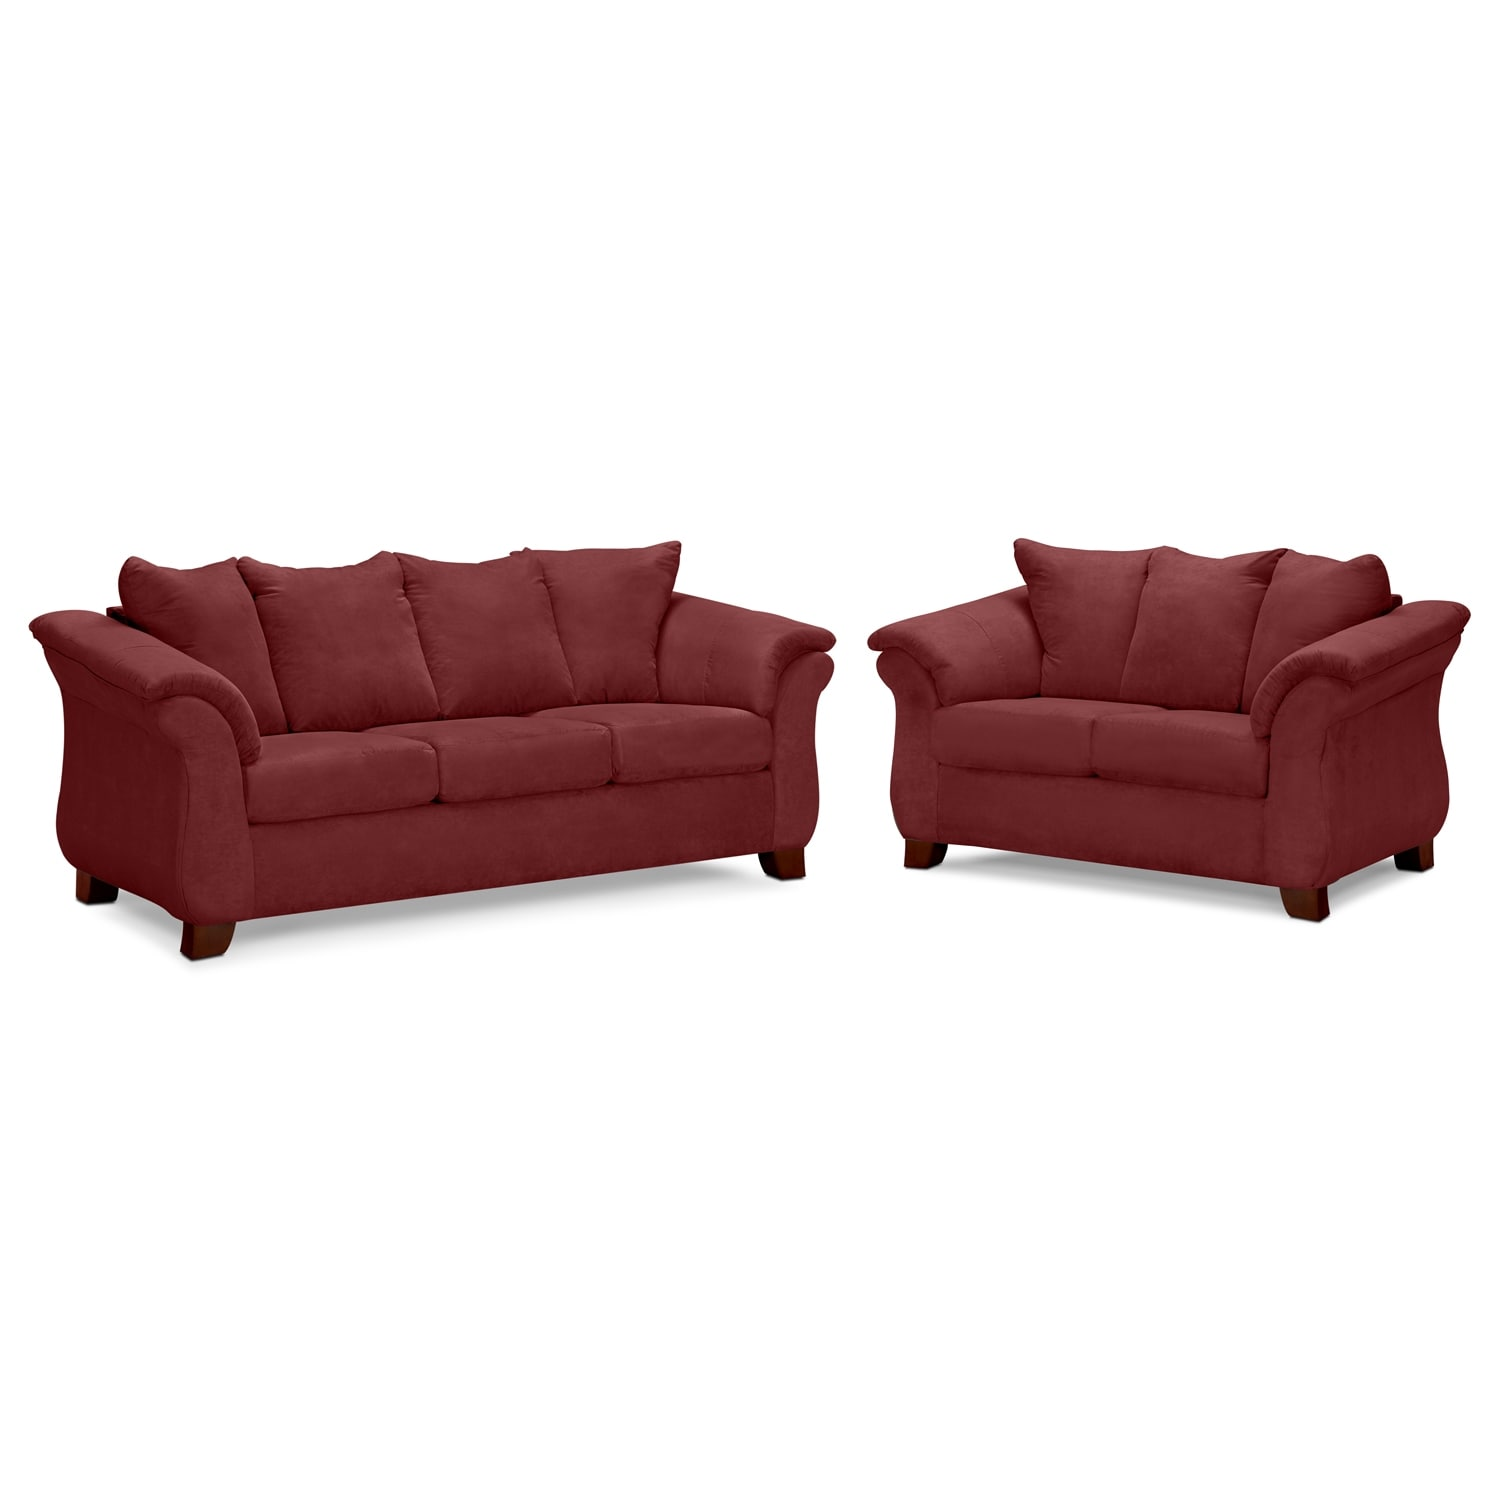 Adrian loveseat red value city furniture Red sofas and loveseats